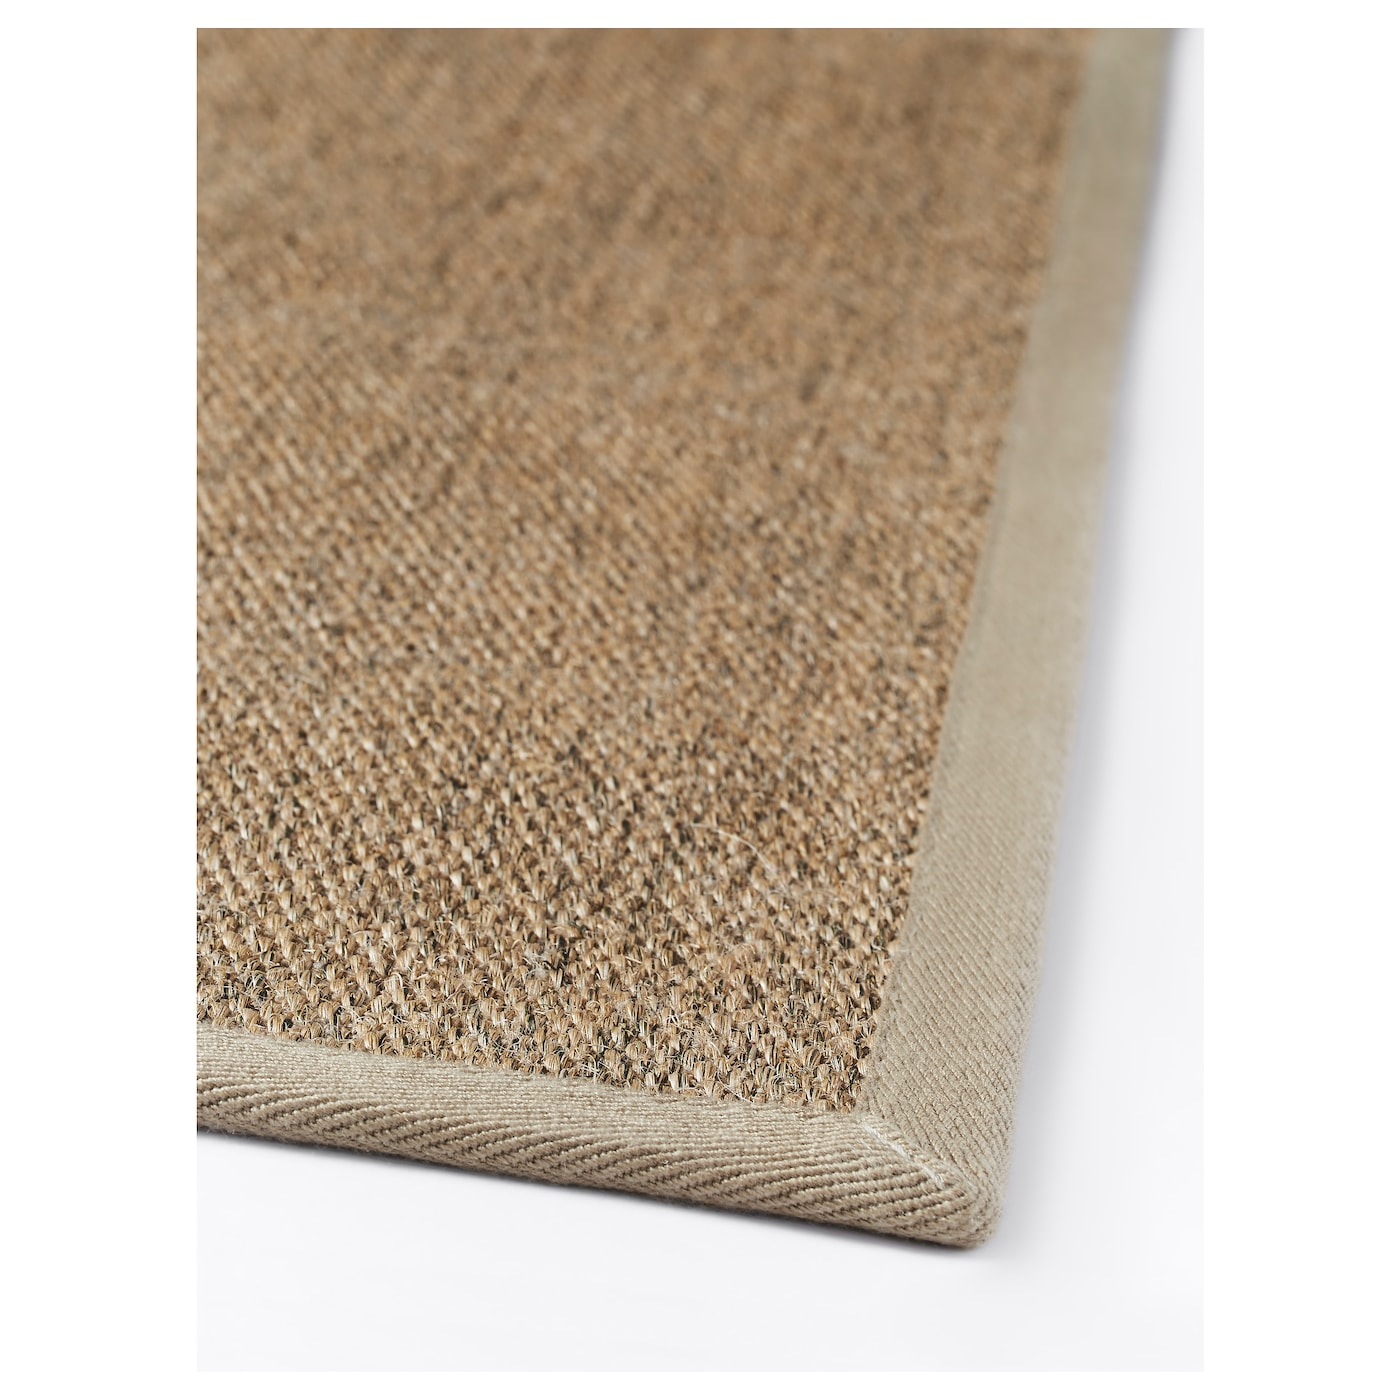 Osted rug flatwoven natural 80x140 cm ikea for Ikea rugs